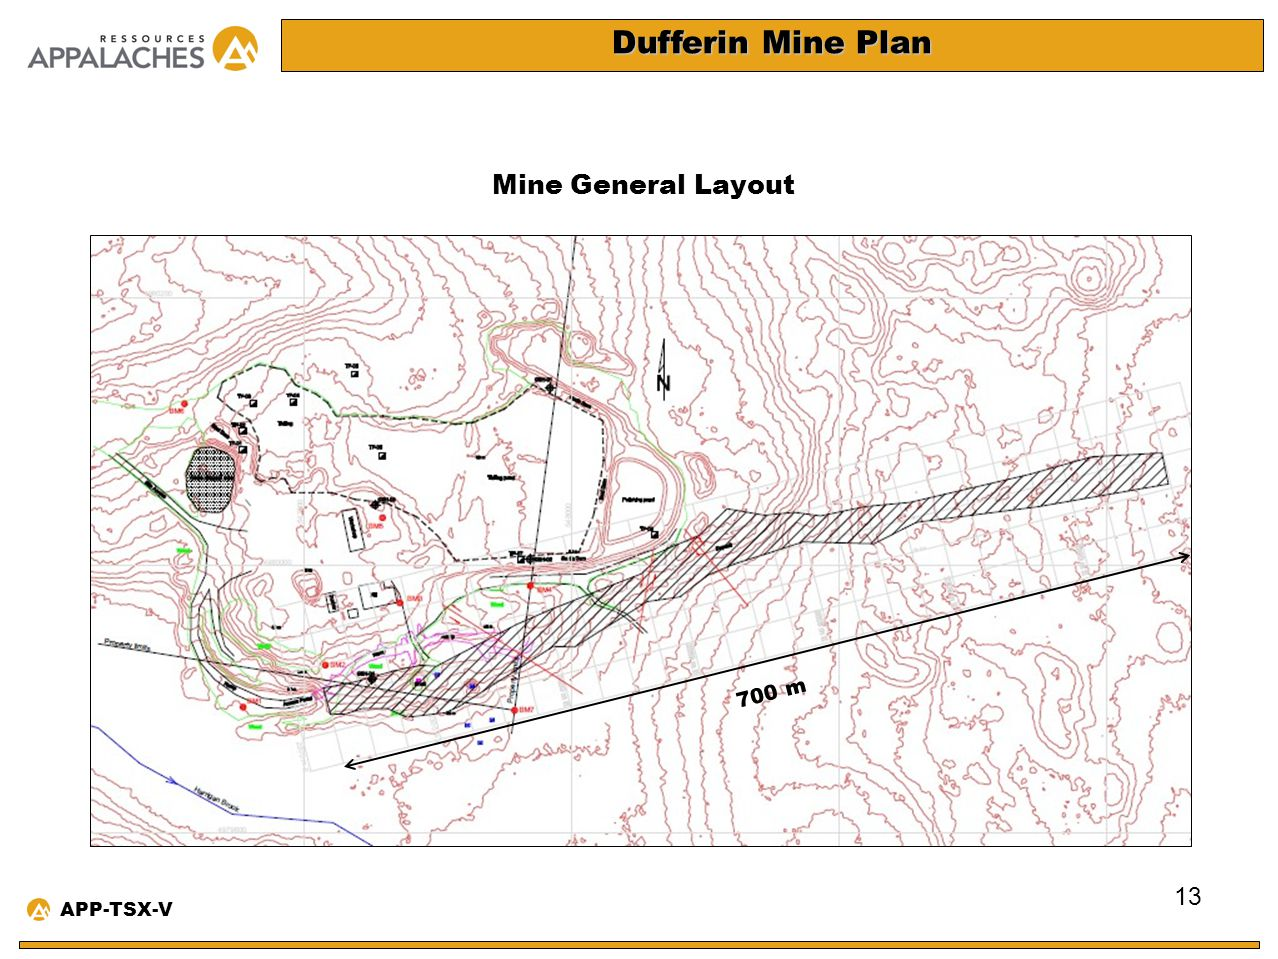 Dufferin Mine Plan Mine General Layout 700 m APP-TSX-V